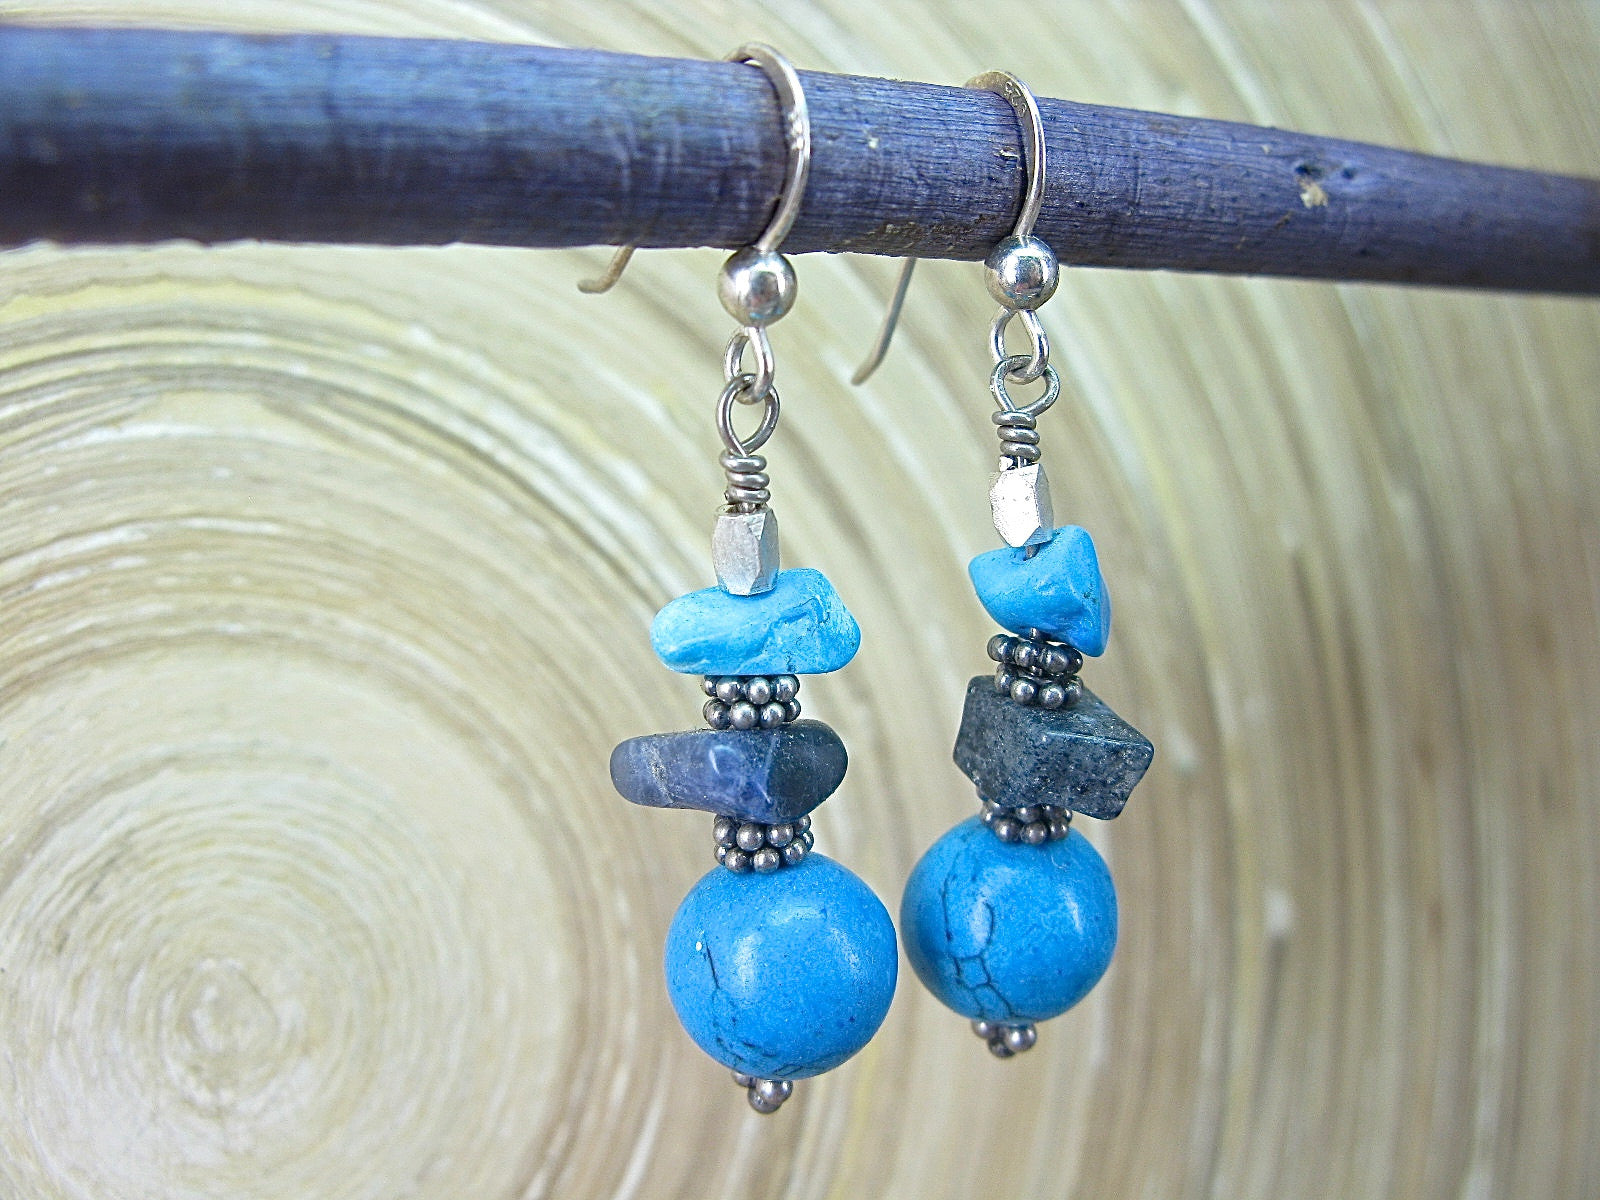 Turquoise Lapis Lazuli Elongated 925 Sterling Silver Earrings Earrings Faith Owl - Faith Owl